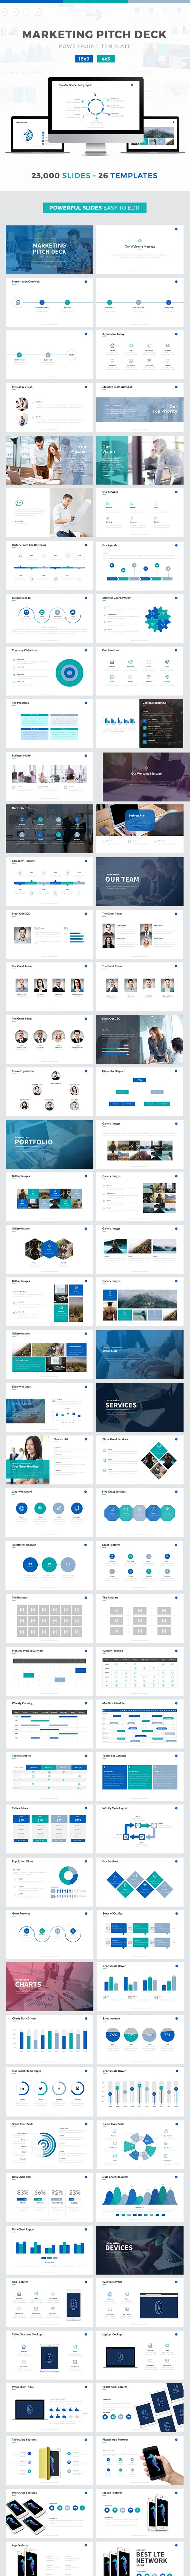 Marketing Pitch Deck Powerpoint Template - Business PowerPoint Templates